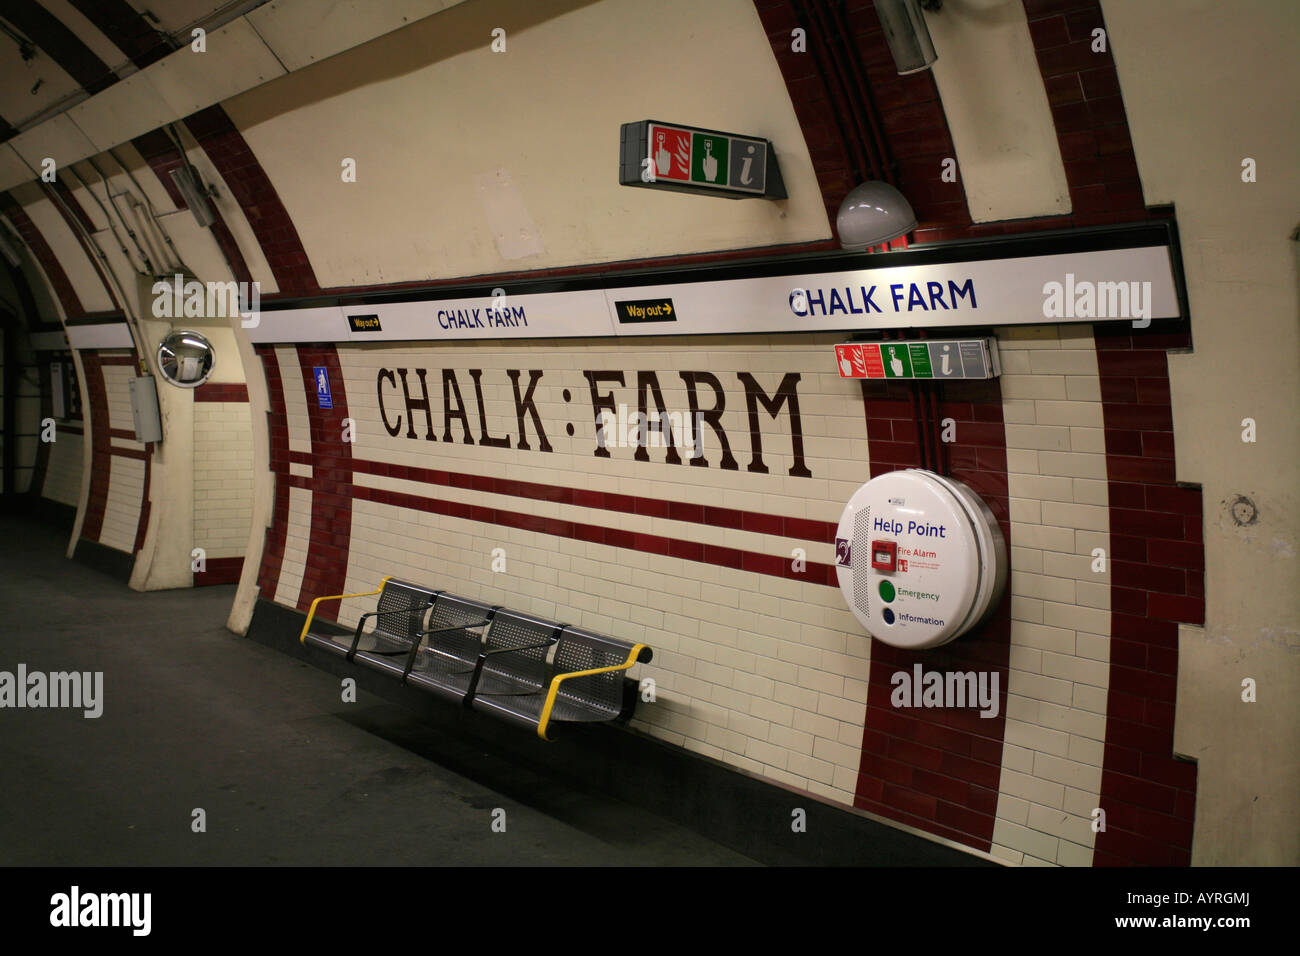 La station de métro Chalk Farm, métro de Londres, Londres, Angleterre, Royaume-Uni Photo Stock